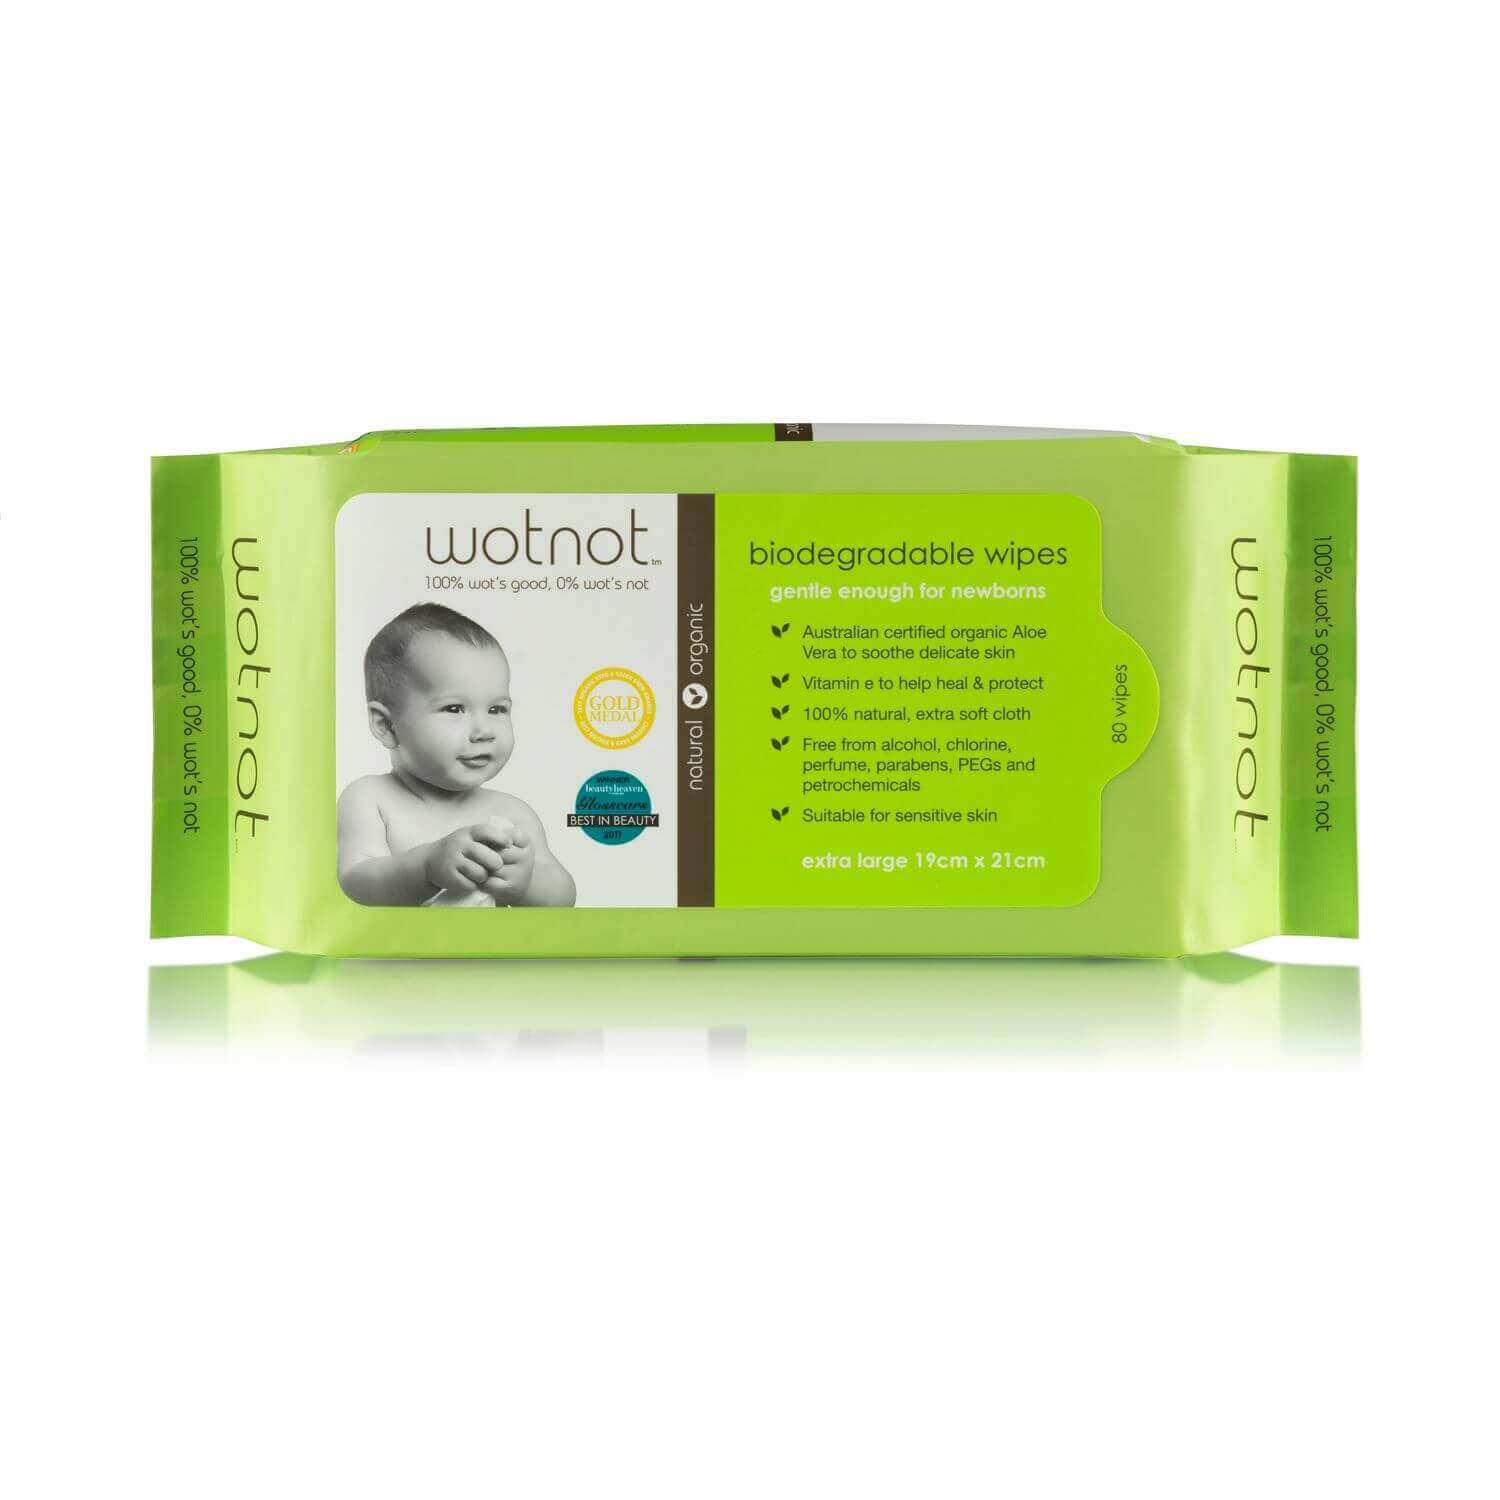 Natural Organic Baby Wipes Review